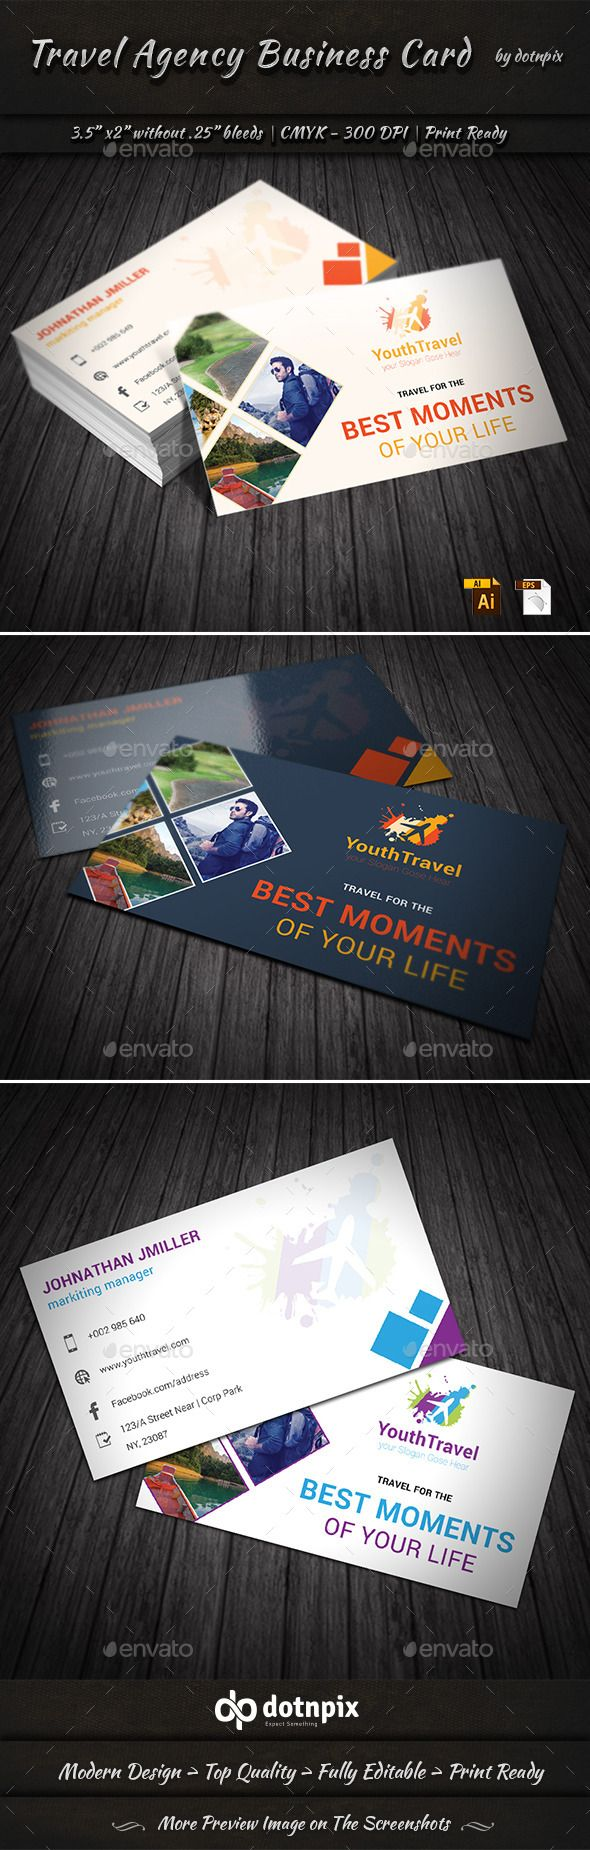 Travel Agency Business Card Agency Business Cards Travel Agency Travel Logo